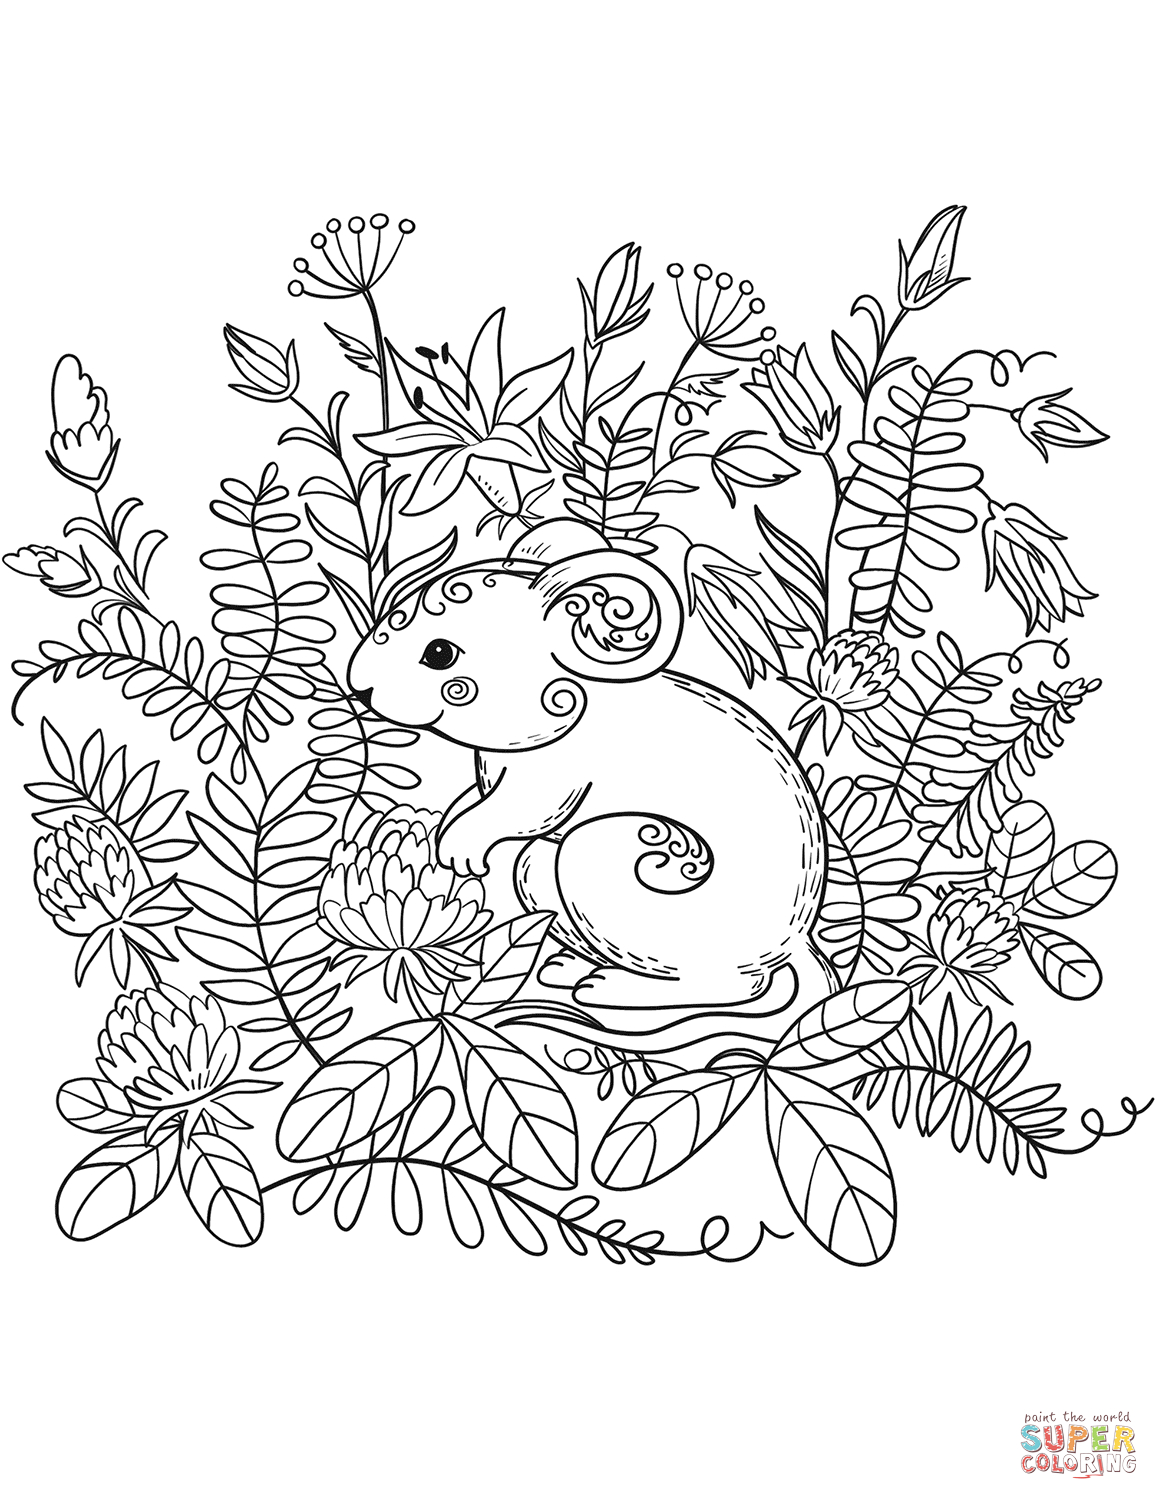 forest animal coloring pages brilliant picture of forest animals coloring pages coloring forest animal pages